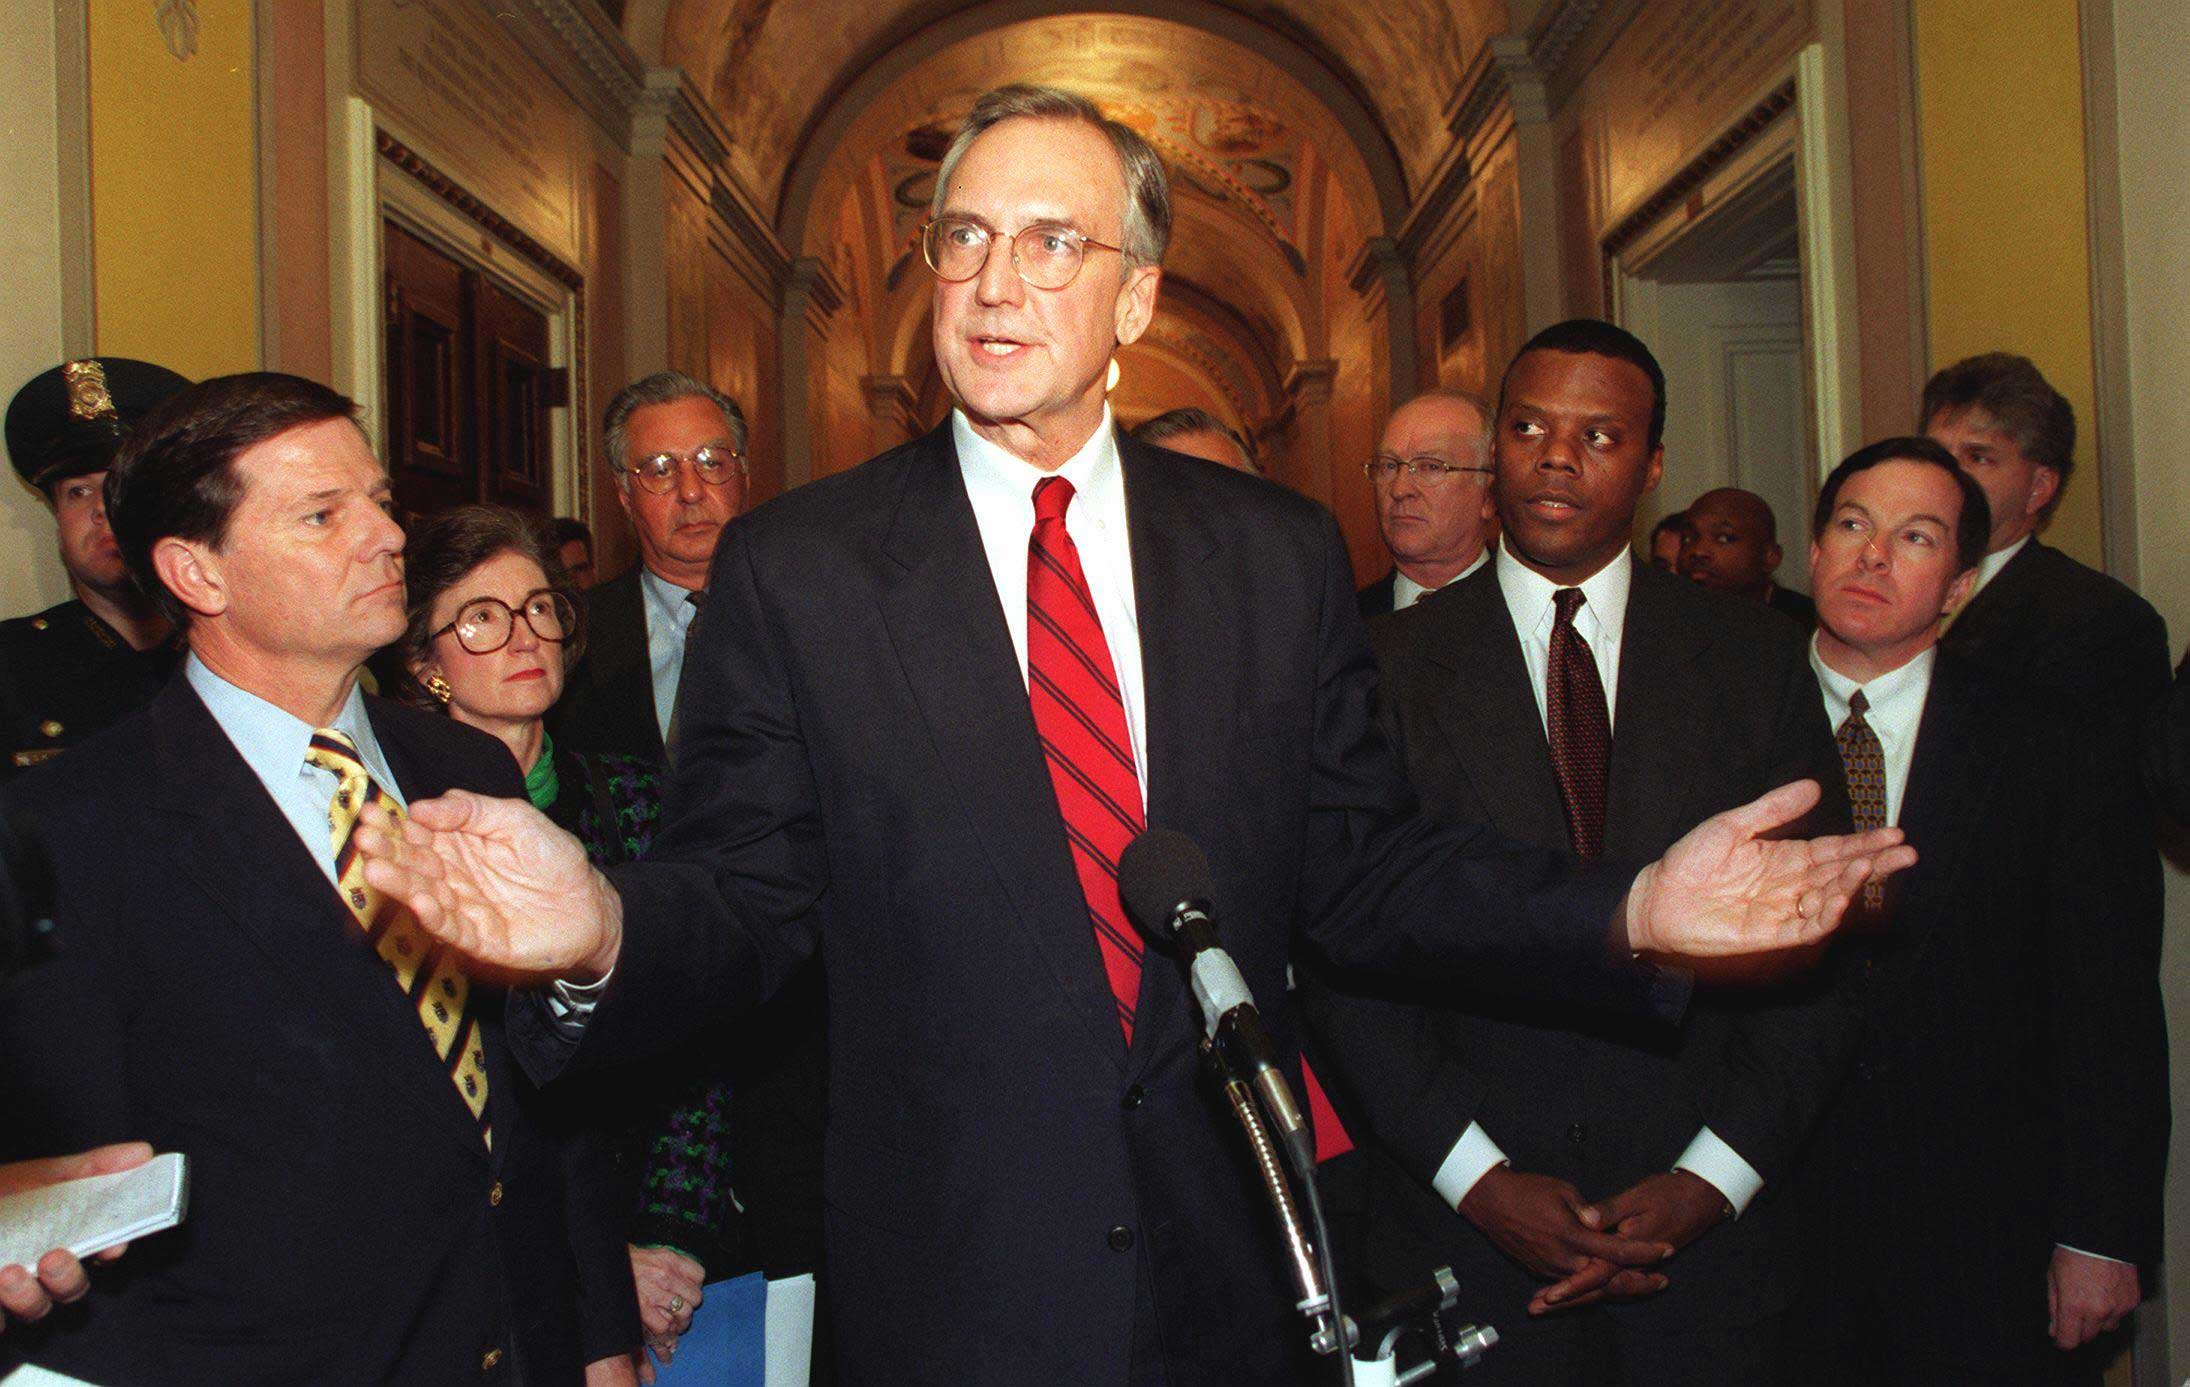 Rep. Bob Livingston (R-La.) faced a sex scandal at the exact worst time: right as Republicans were calling for the impeachment of President Clinton. Livingston stepped down from the speakership in 1998 amid threats that details of his own affairs would be brought to light.